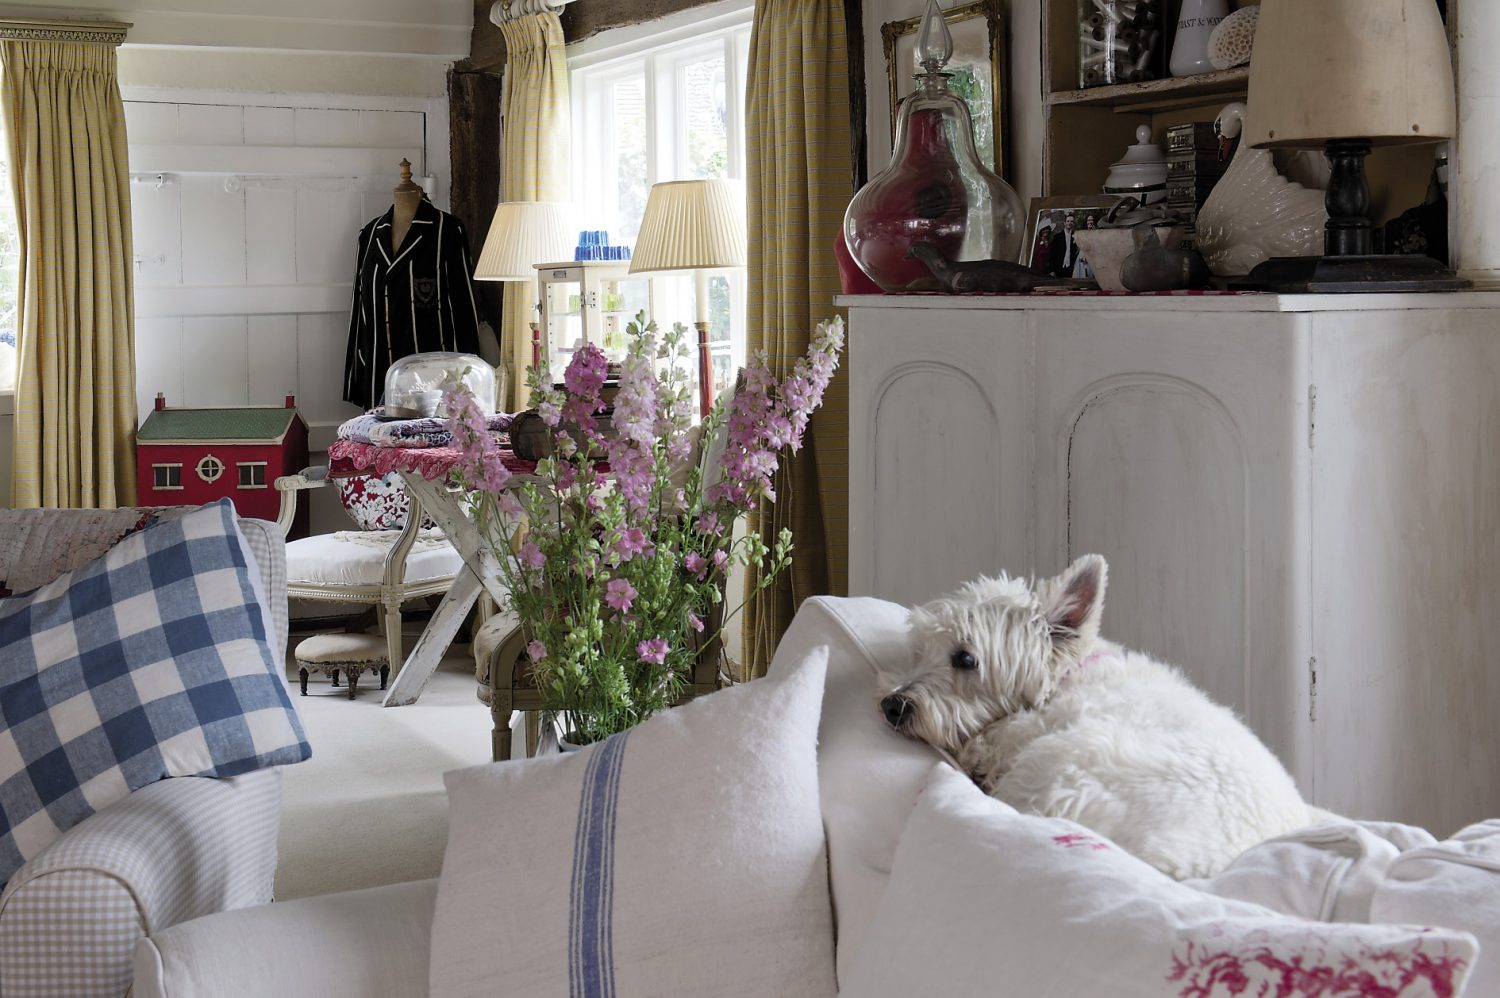 Madeline's West Highland Terrier, Hattie, curls up on the top of a sofa